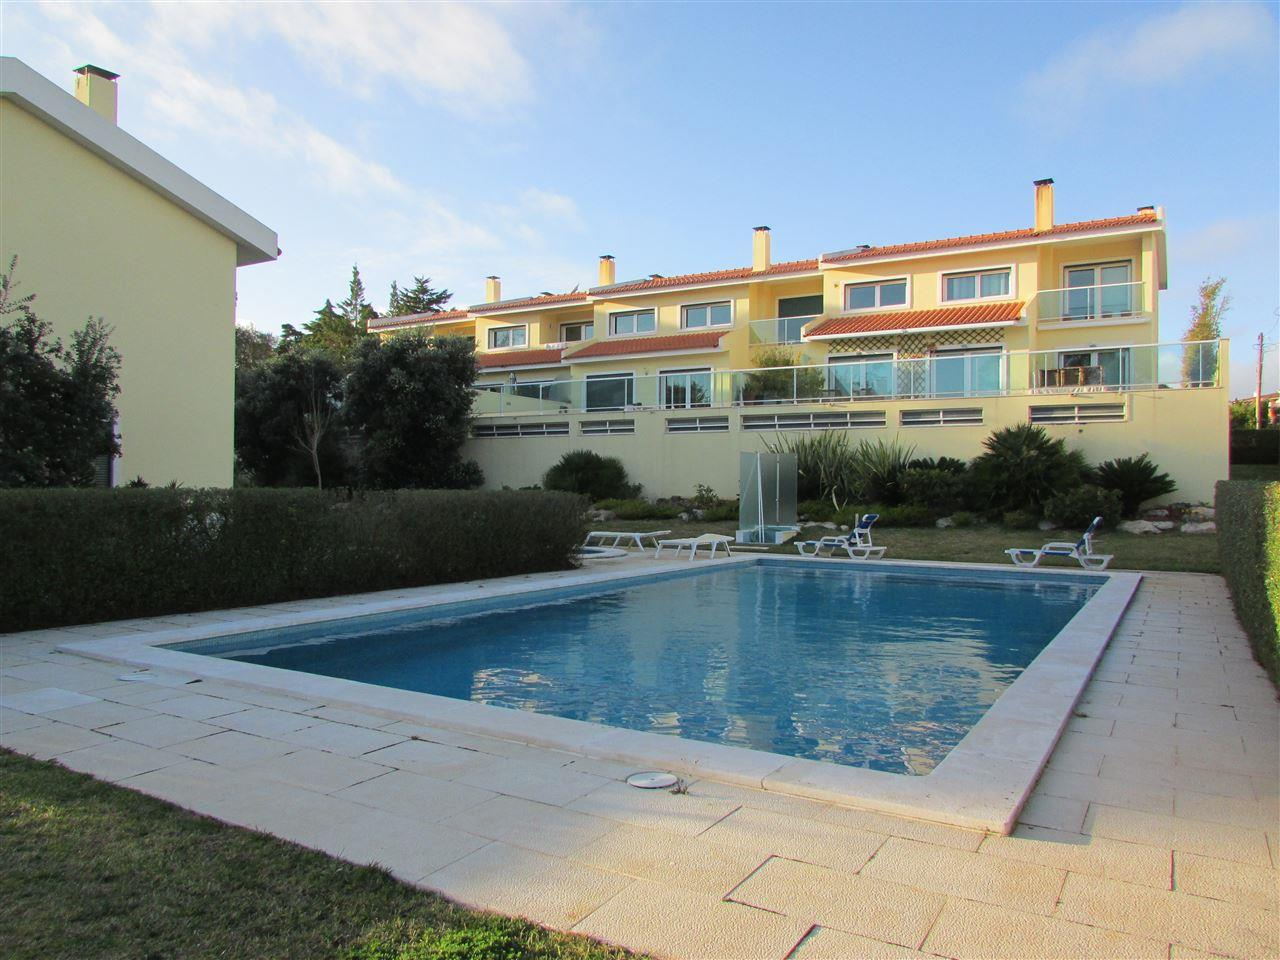 Moradia para Venda às Terraced house, 2 bedrooms, for Sale Cascais, Lisboa, 2750-704 Portugal